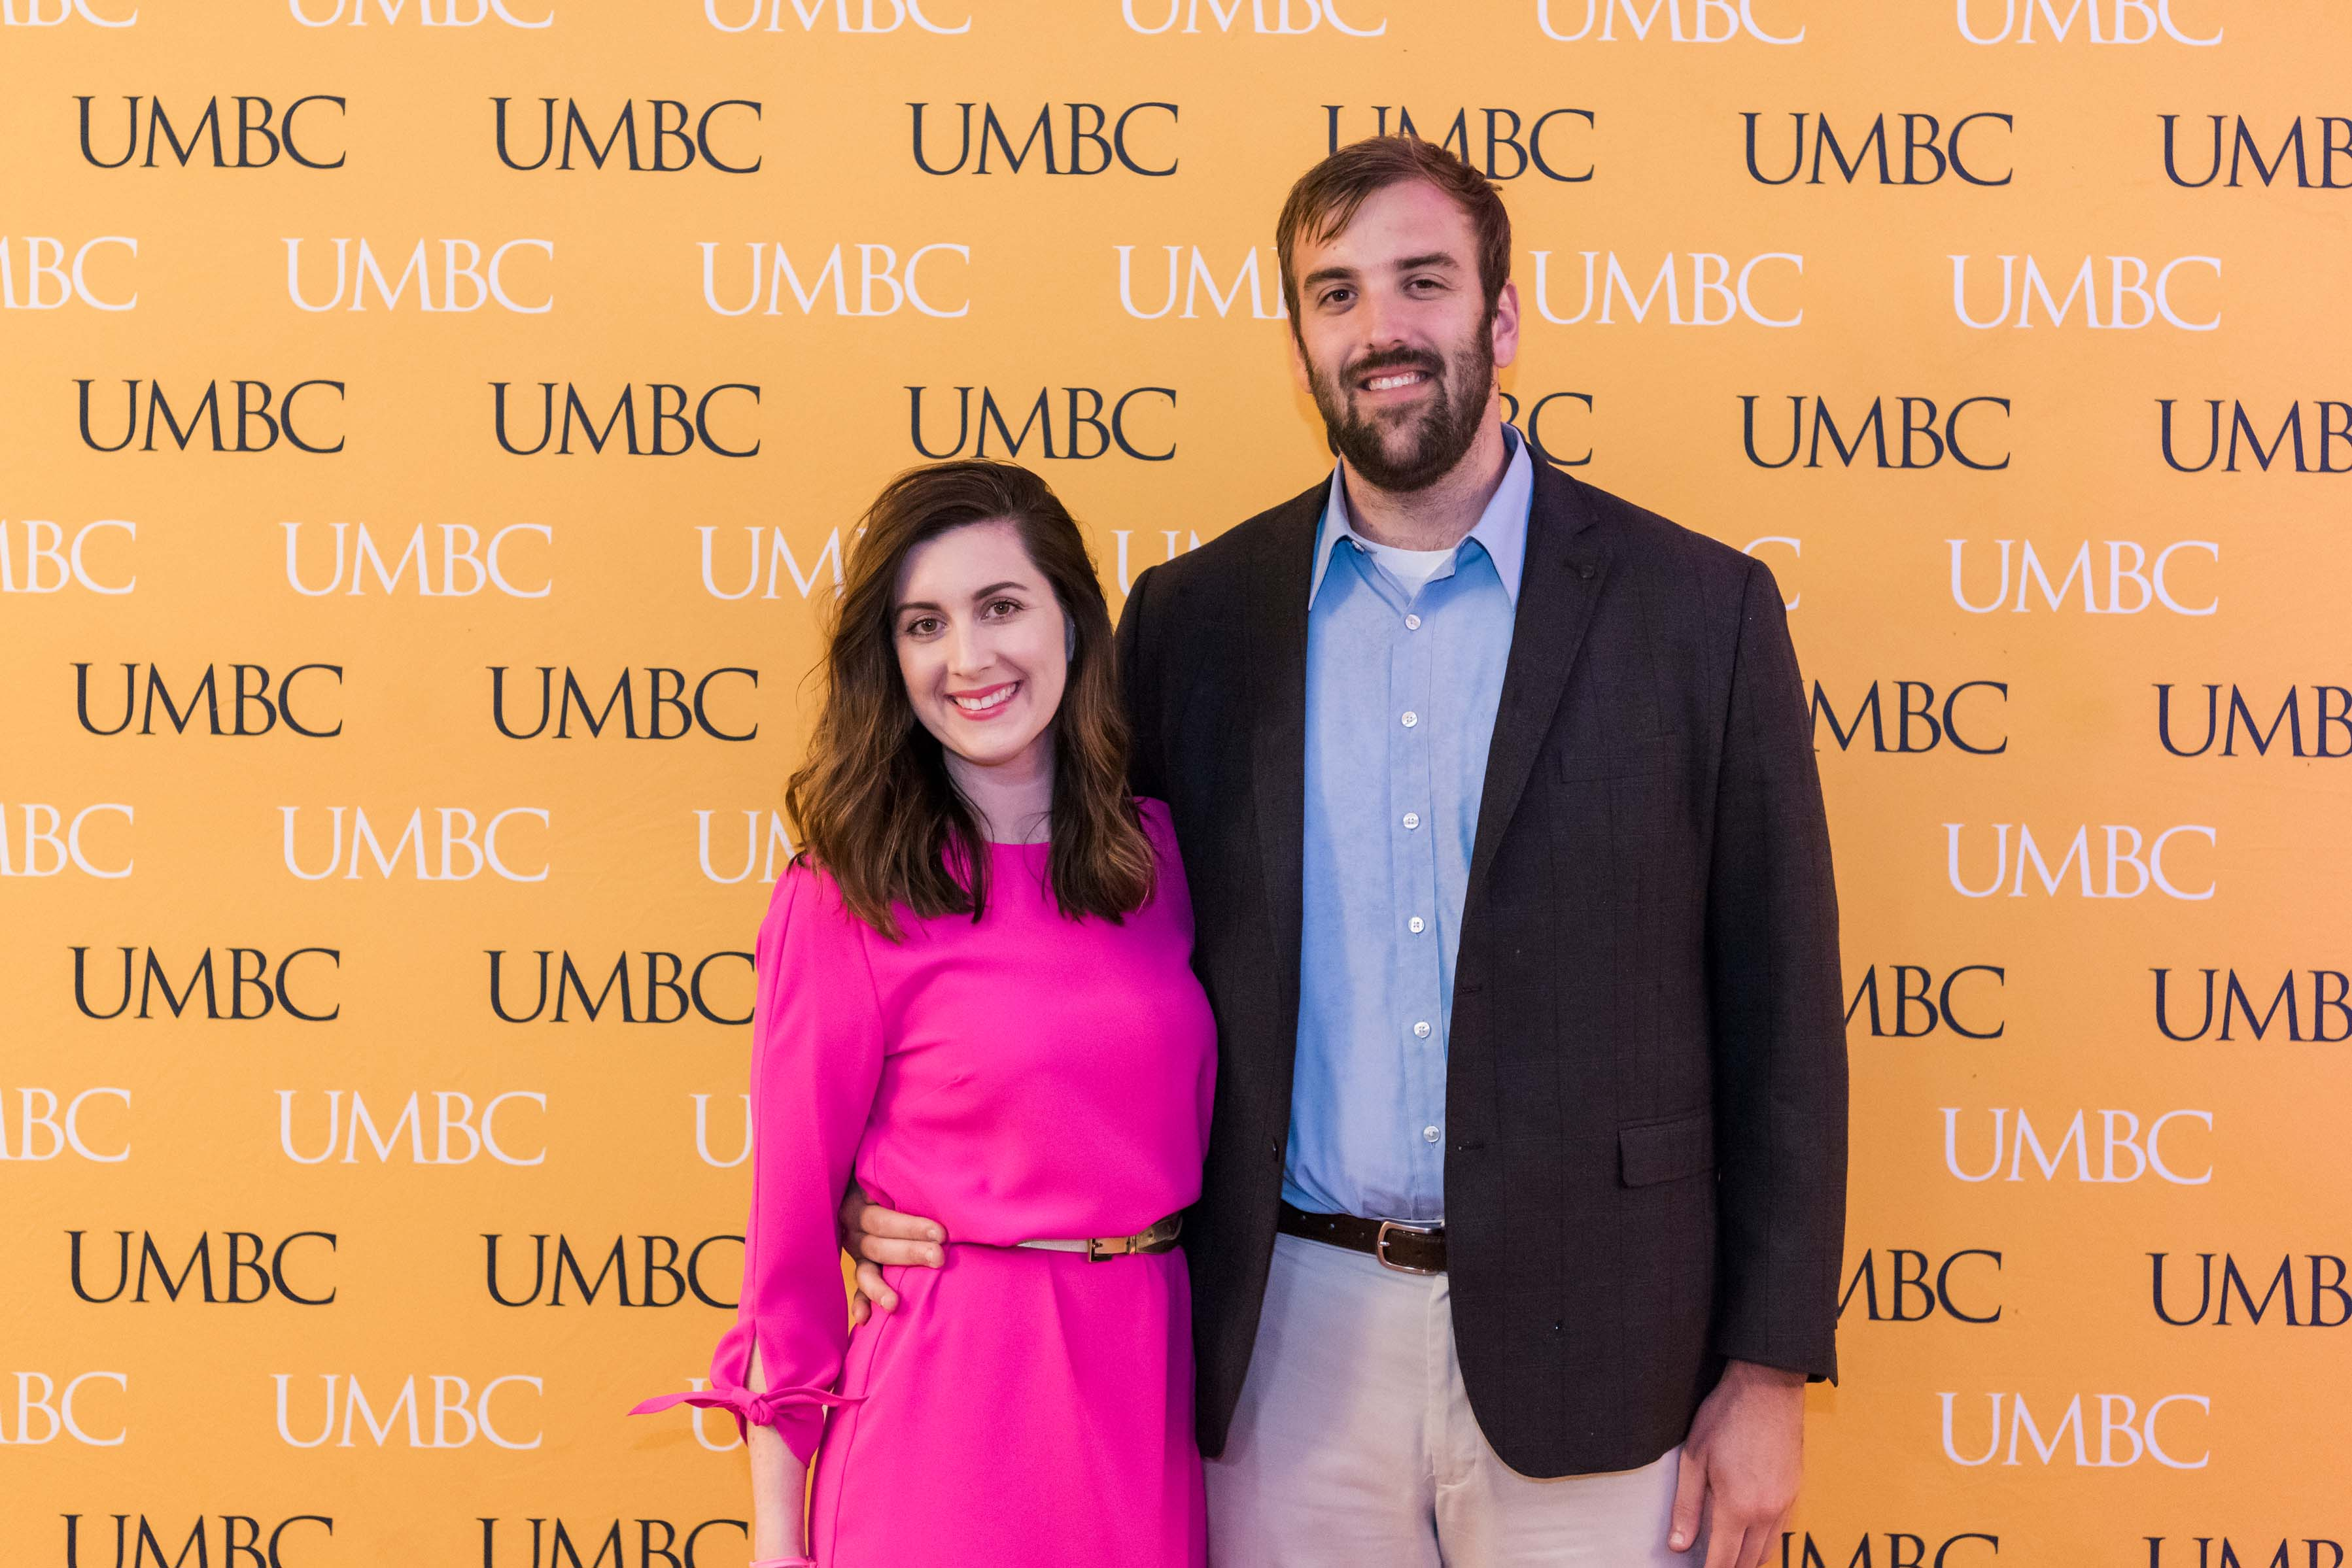 Man and woman pose with UMBC wall at wine tasting event